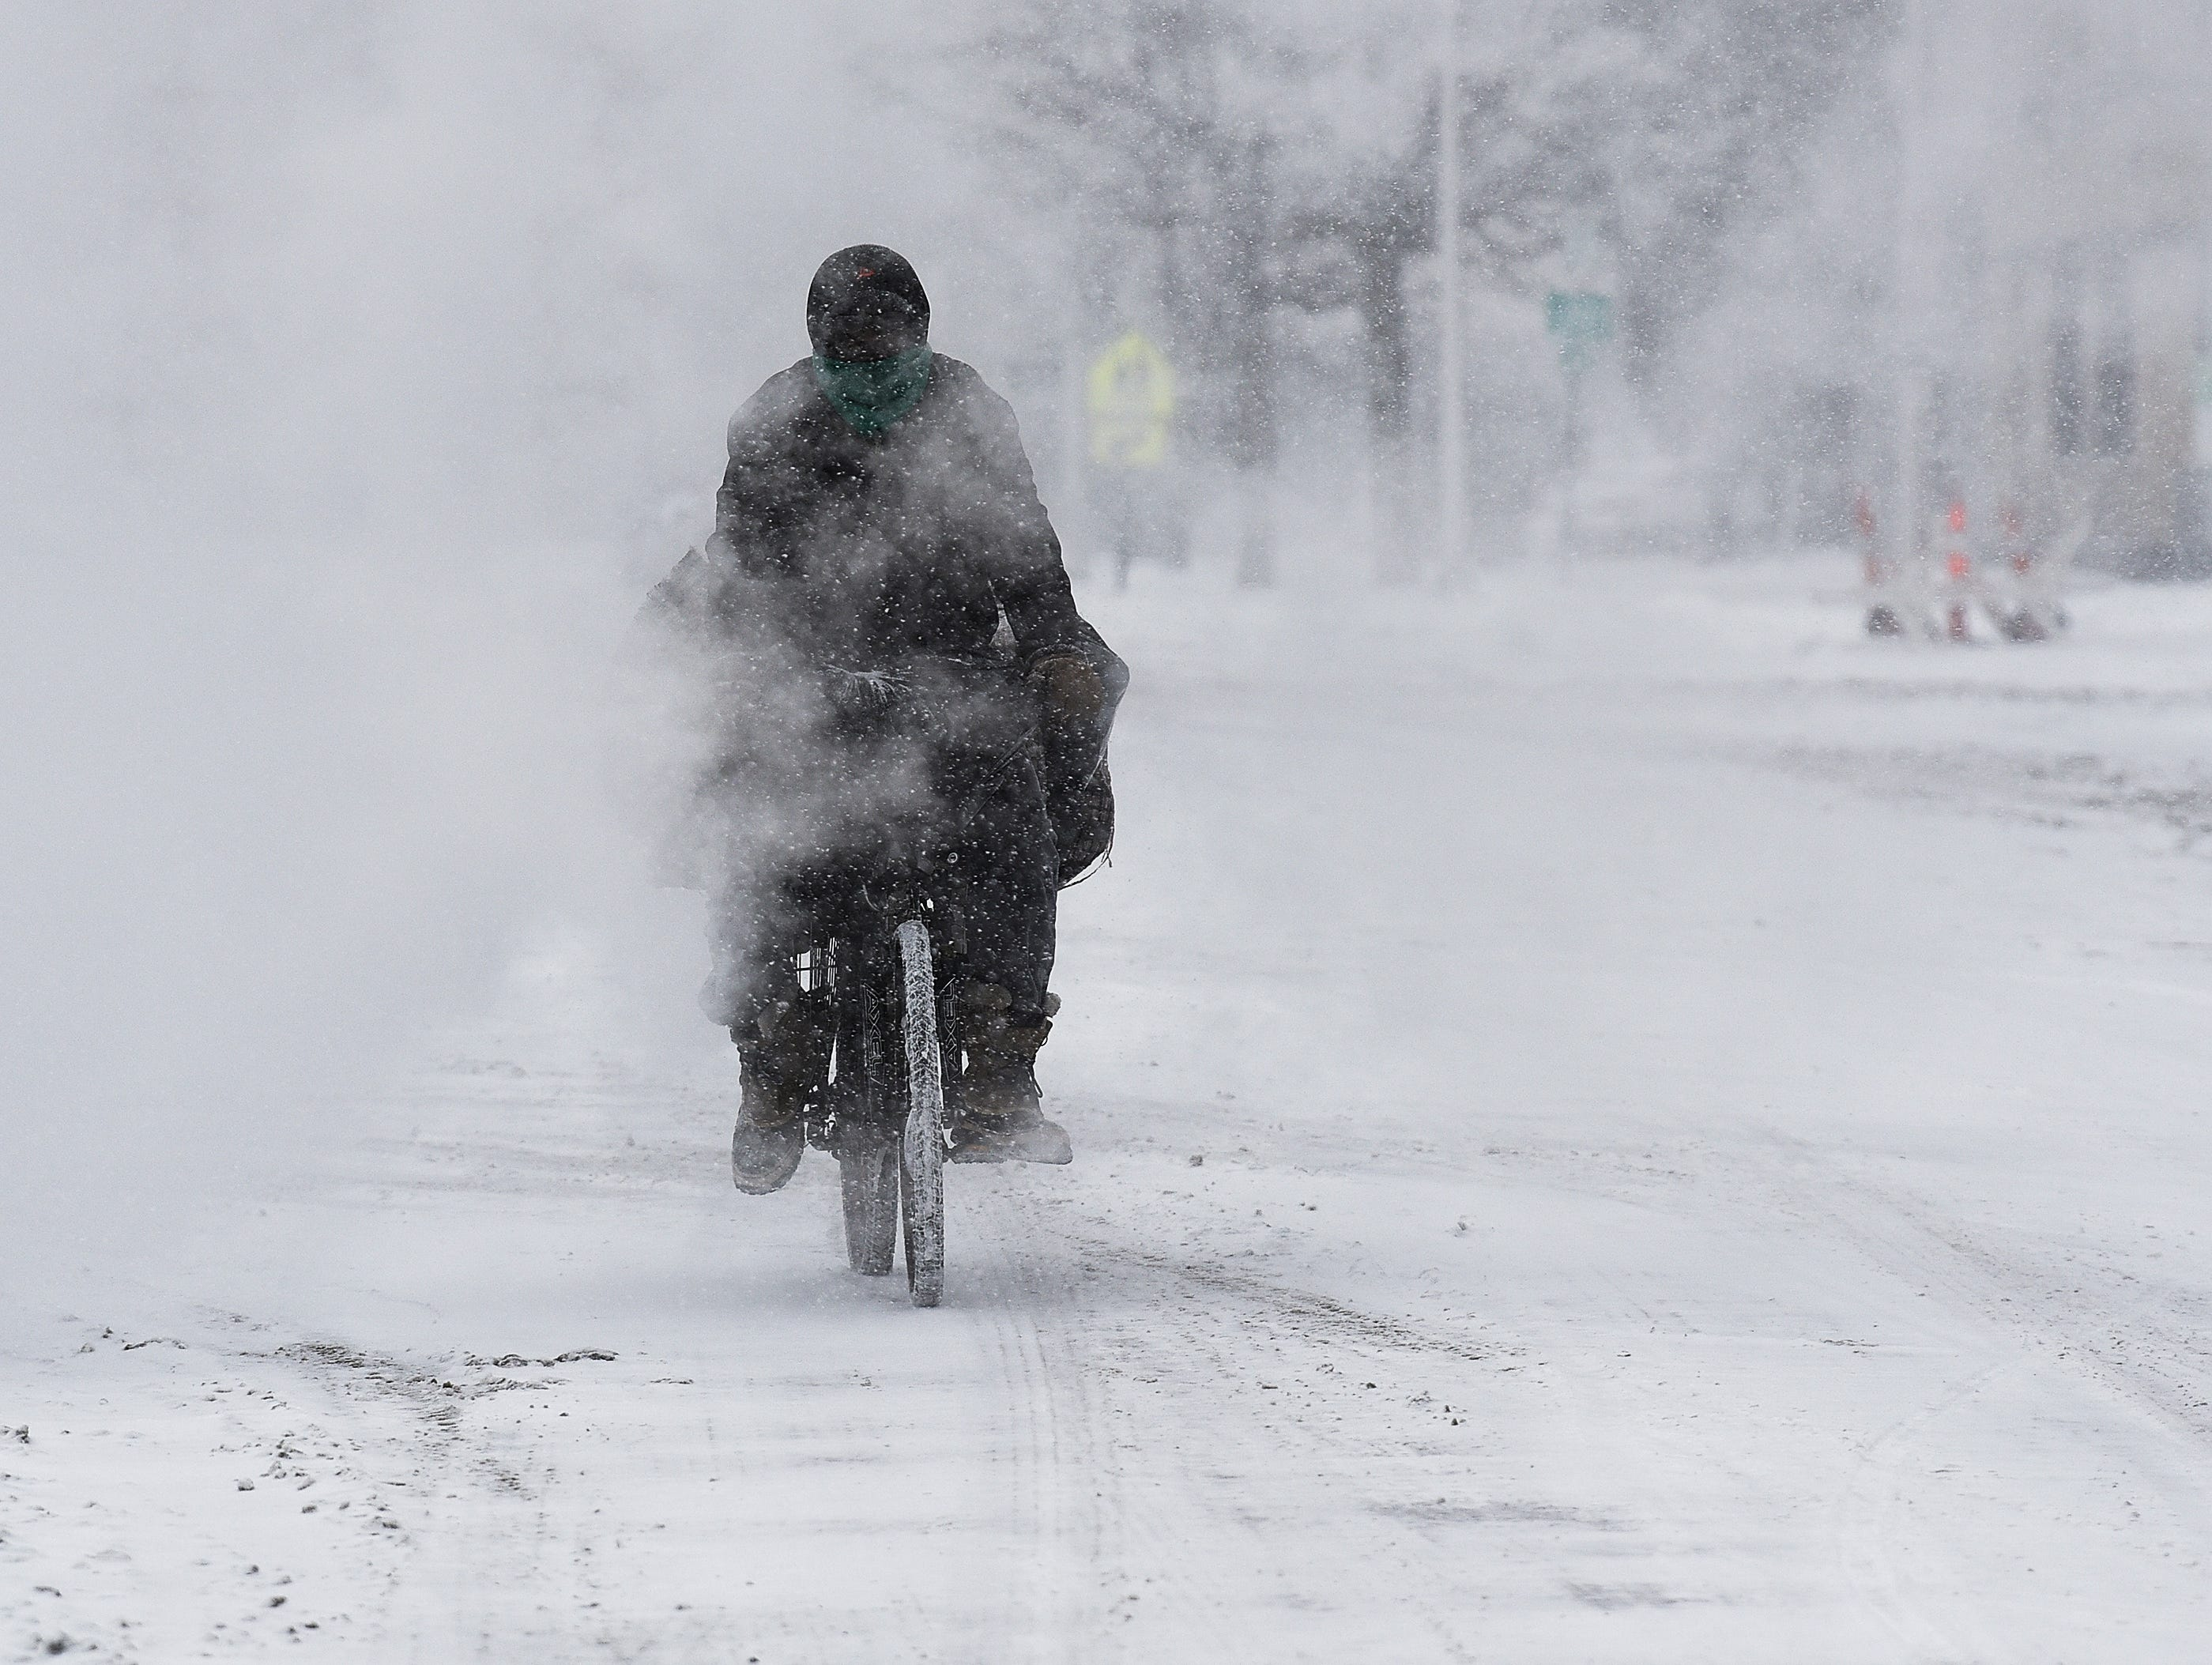 """Melvyn """"Mello"""" Burrell, 46, of Detroit, rides his bike through the steam on Ledyard and Second streets in Detroit on his way to the store, Monday, January 28, 2019."""